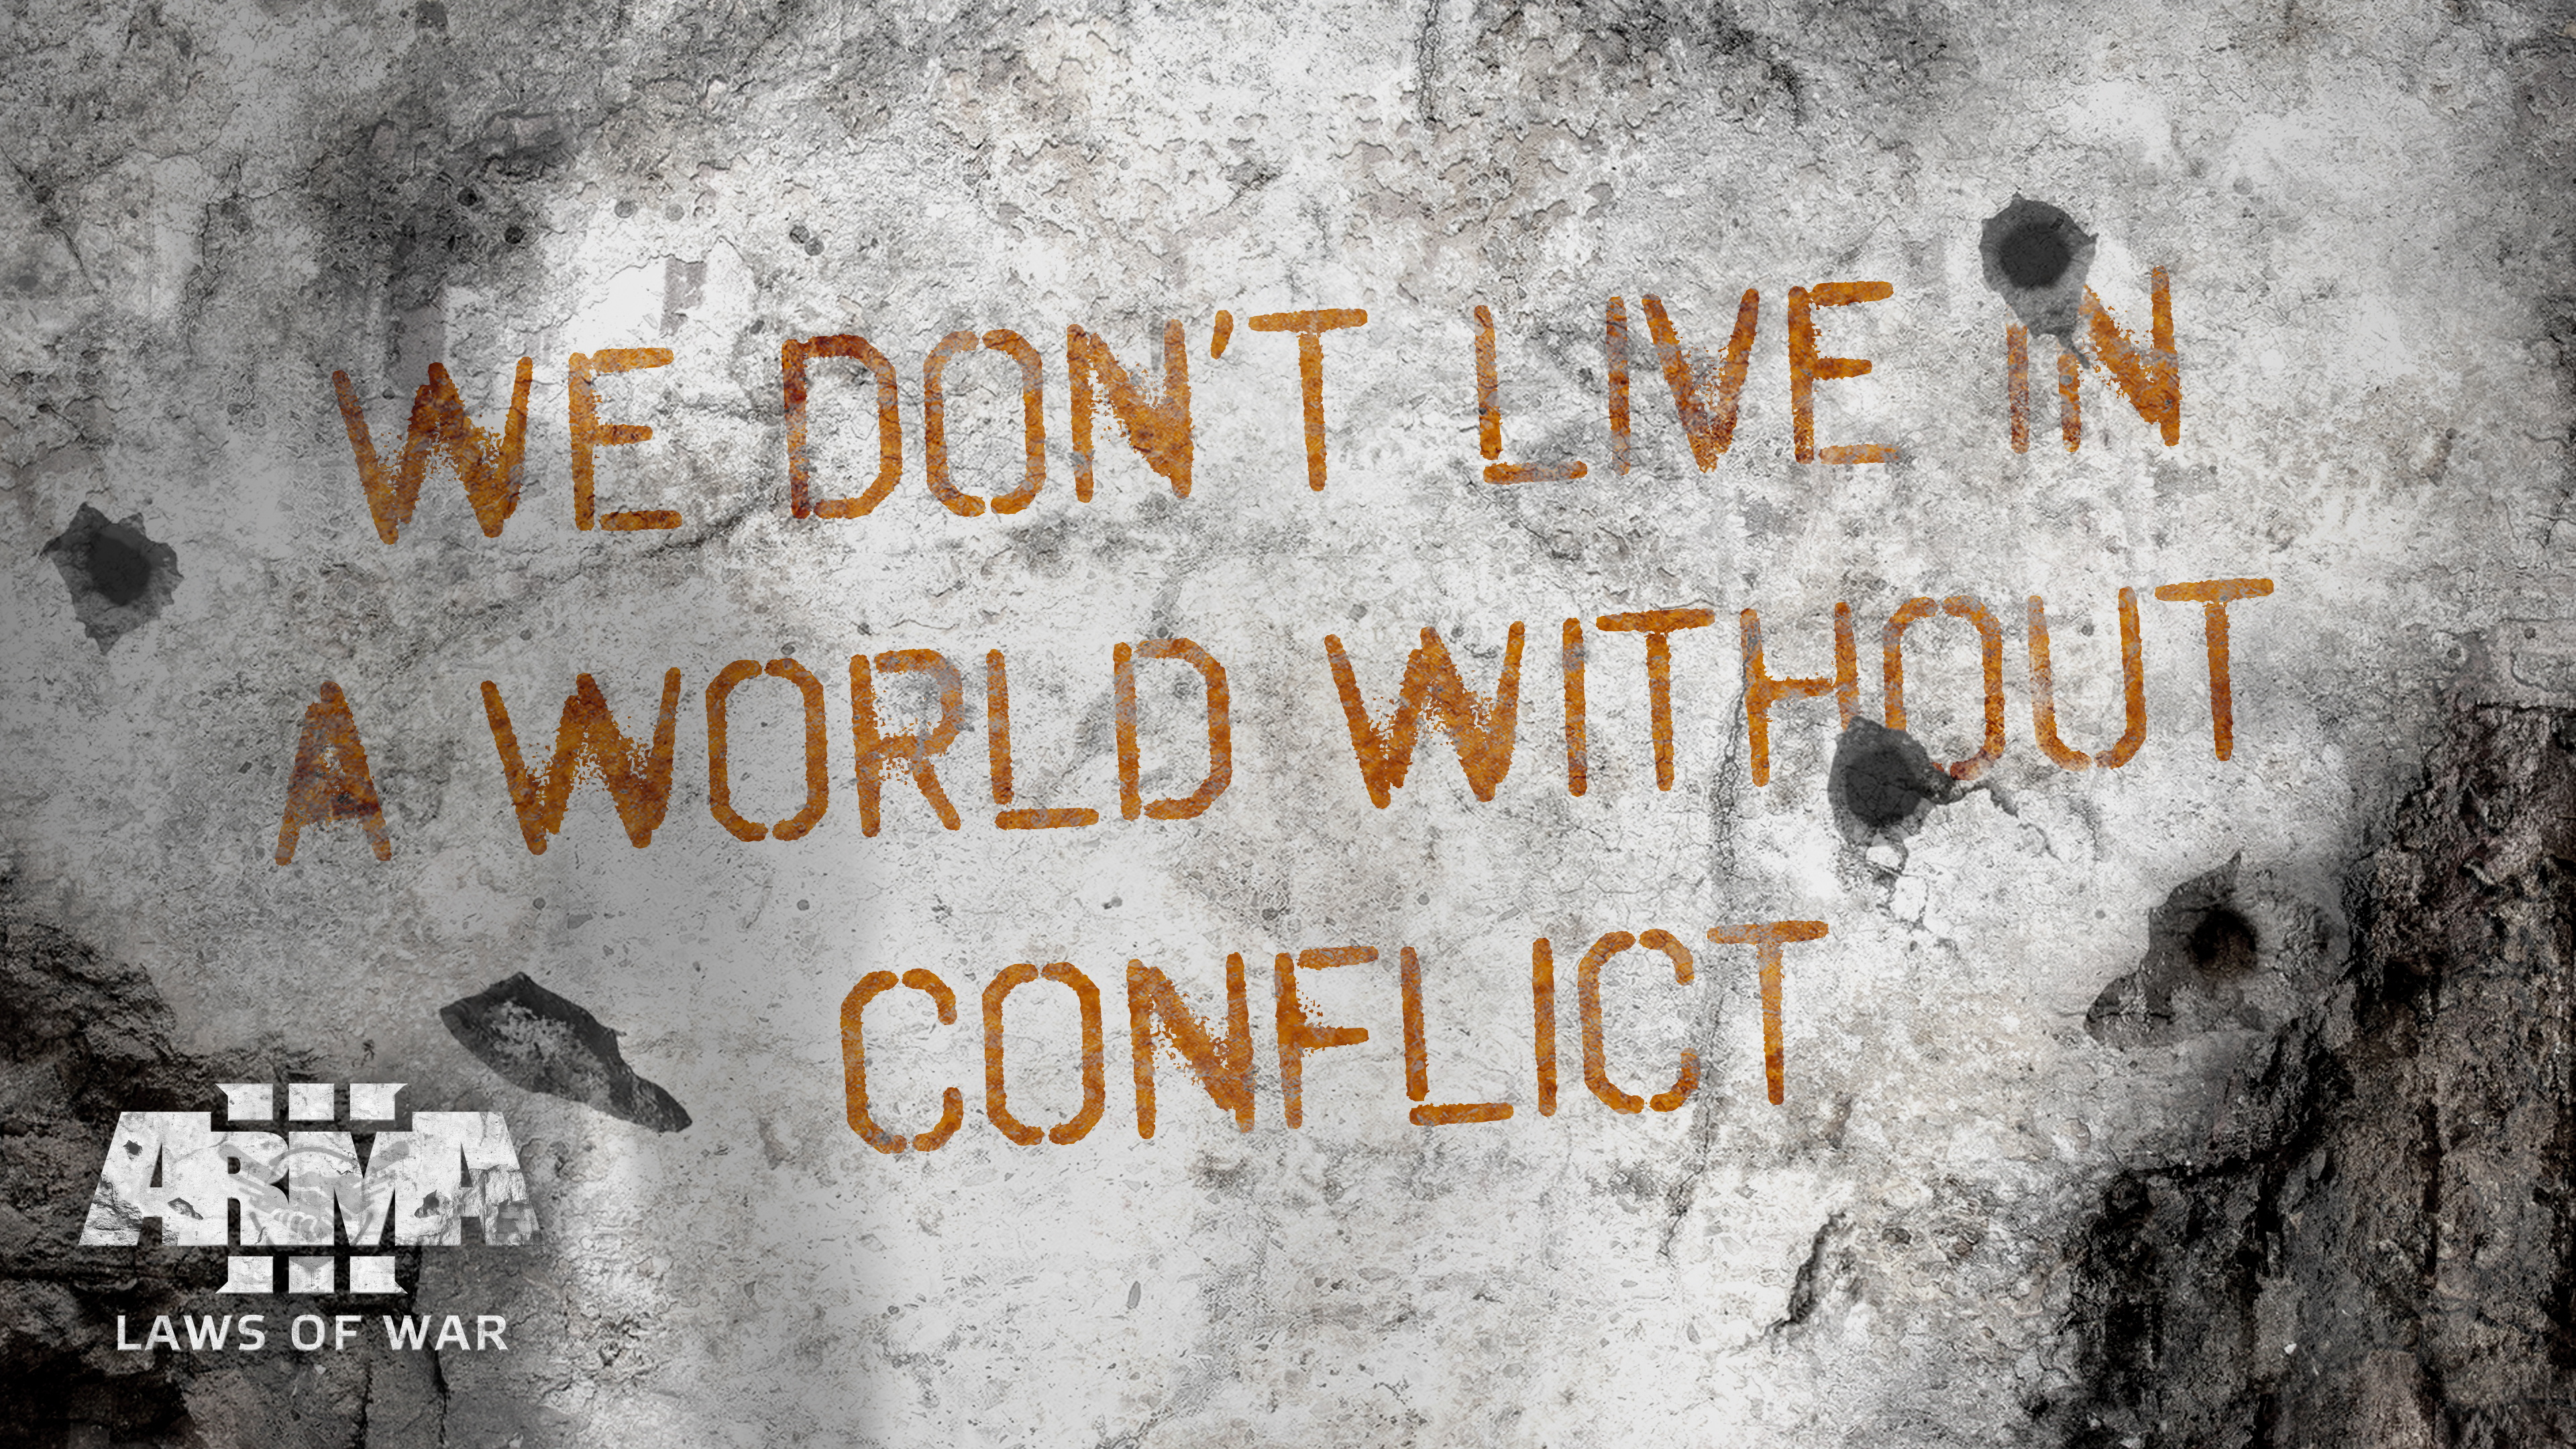 We don't live in a world without conflict -ArmA3 Laws of war DLC [3840 x 2160]